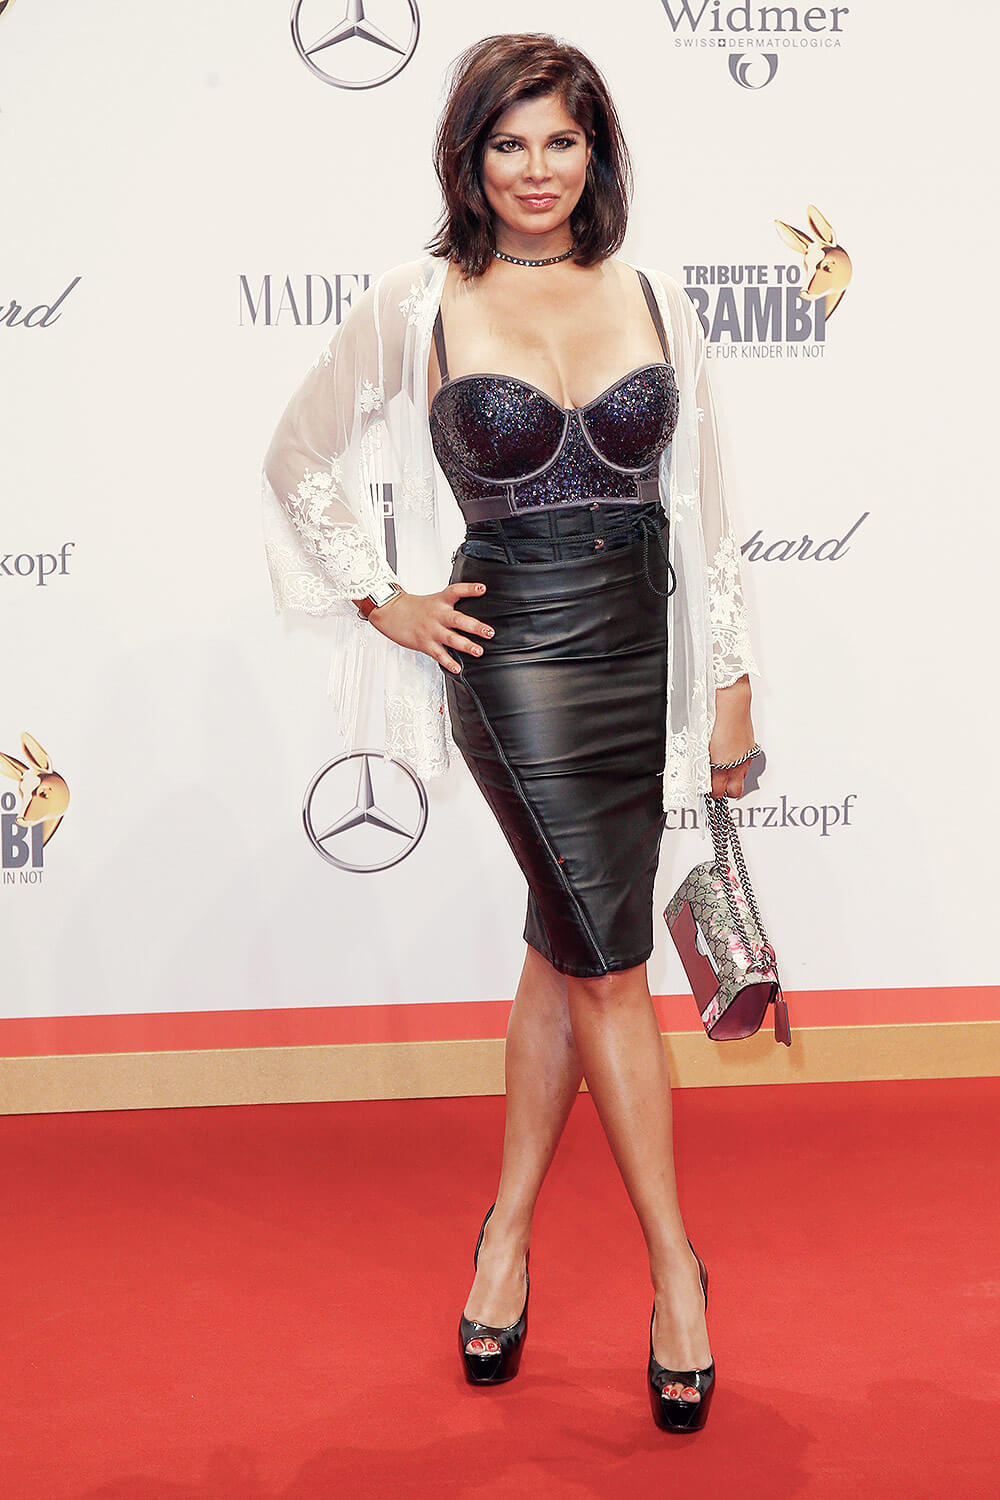 Indira Weis attends the Tribute To Bambi